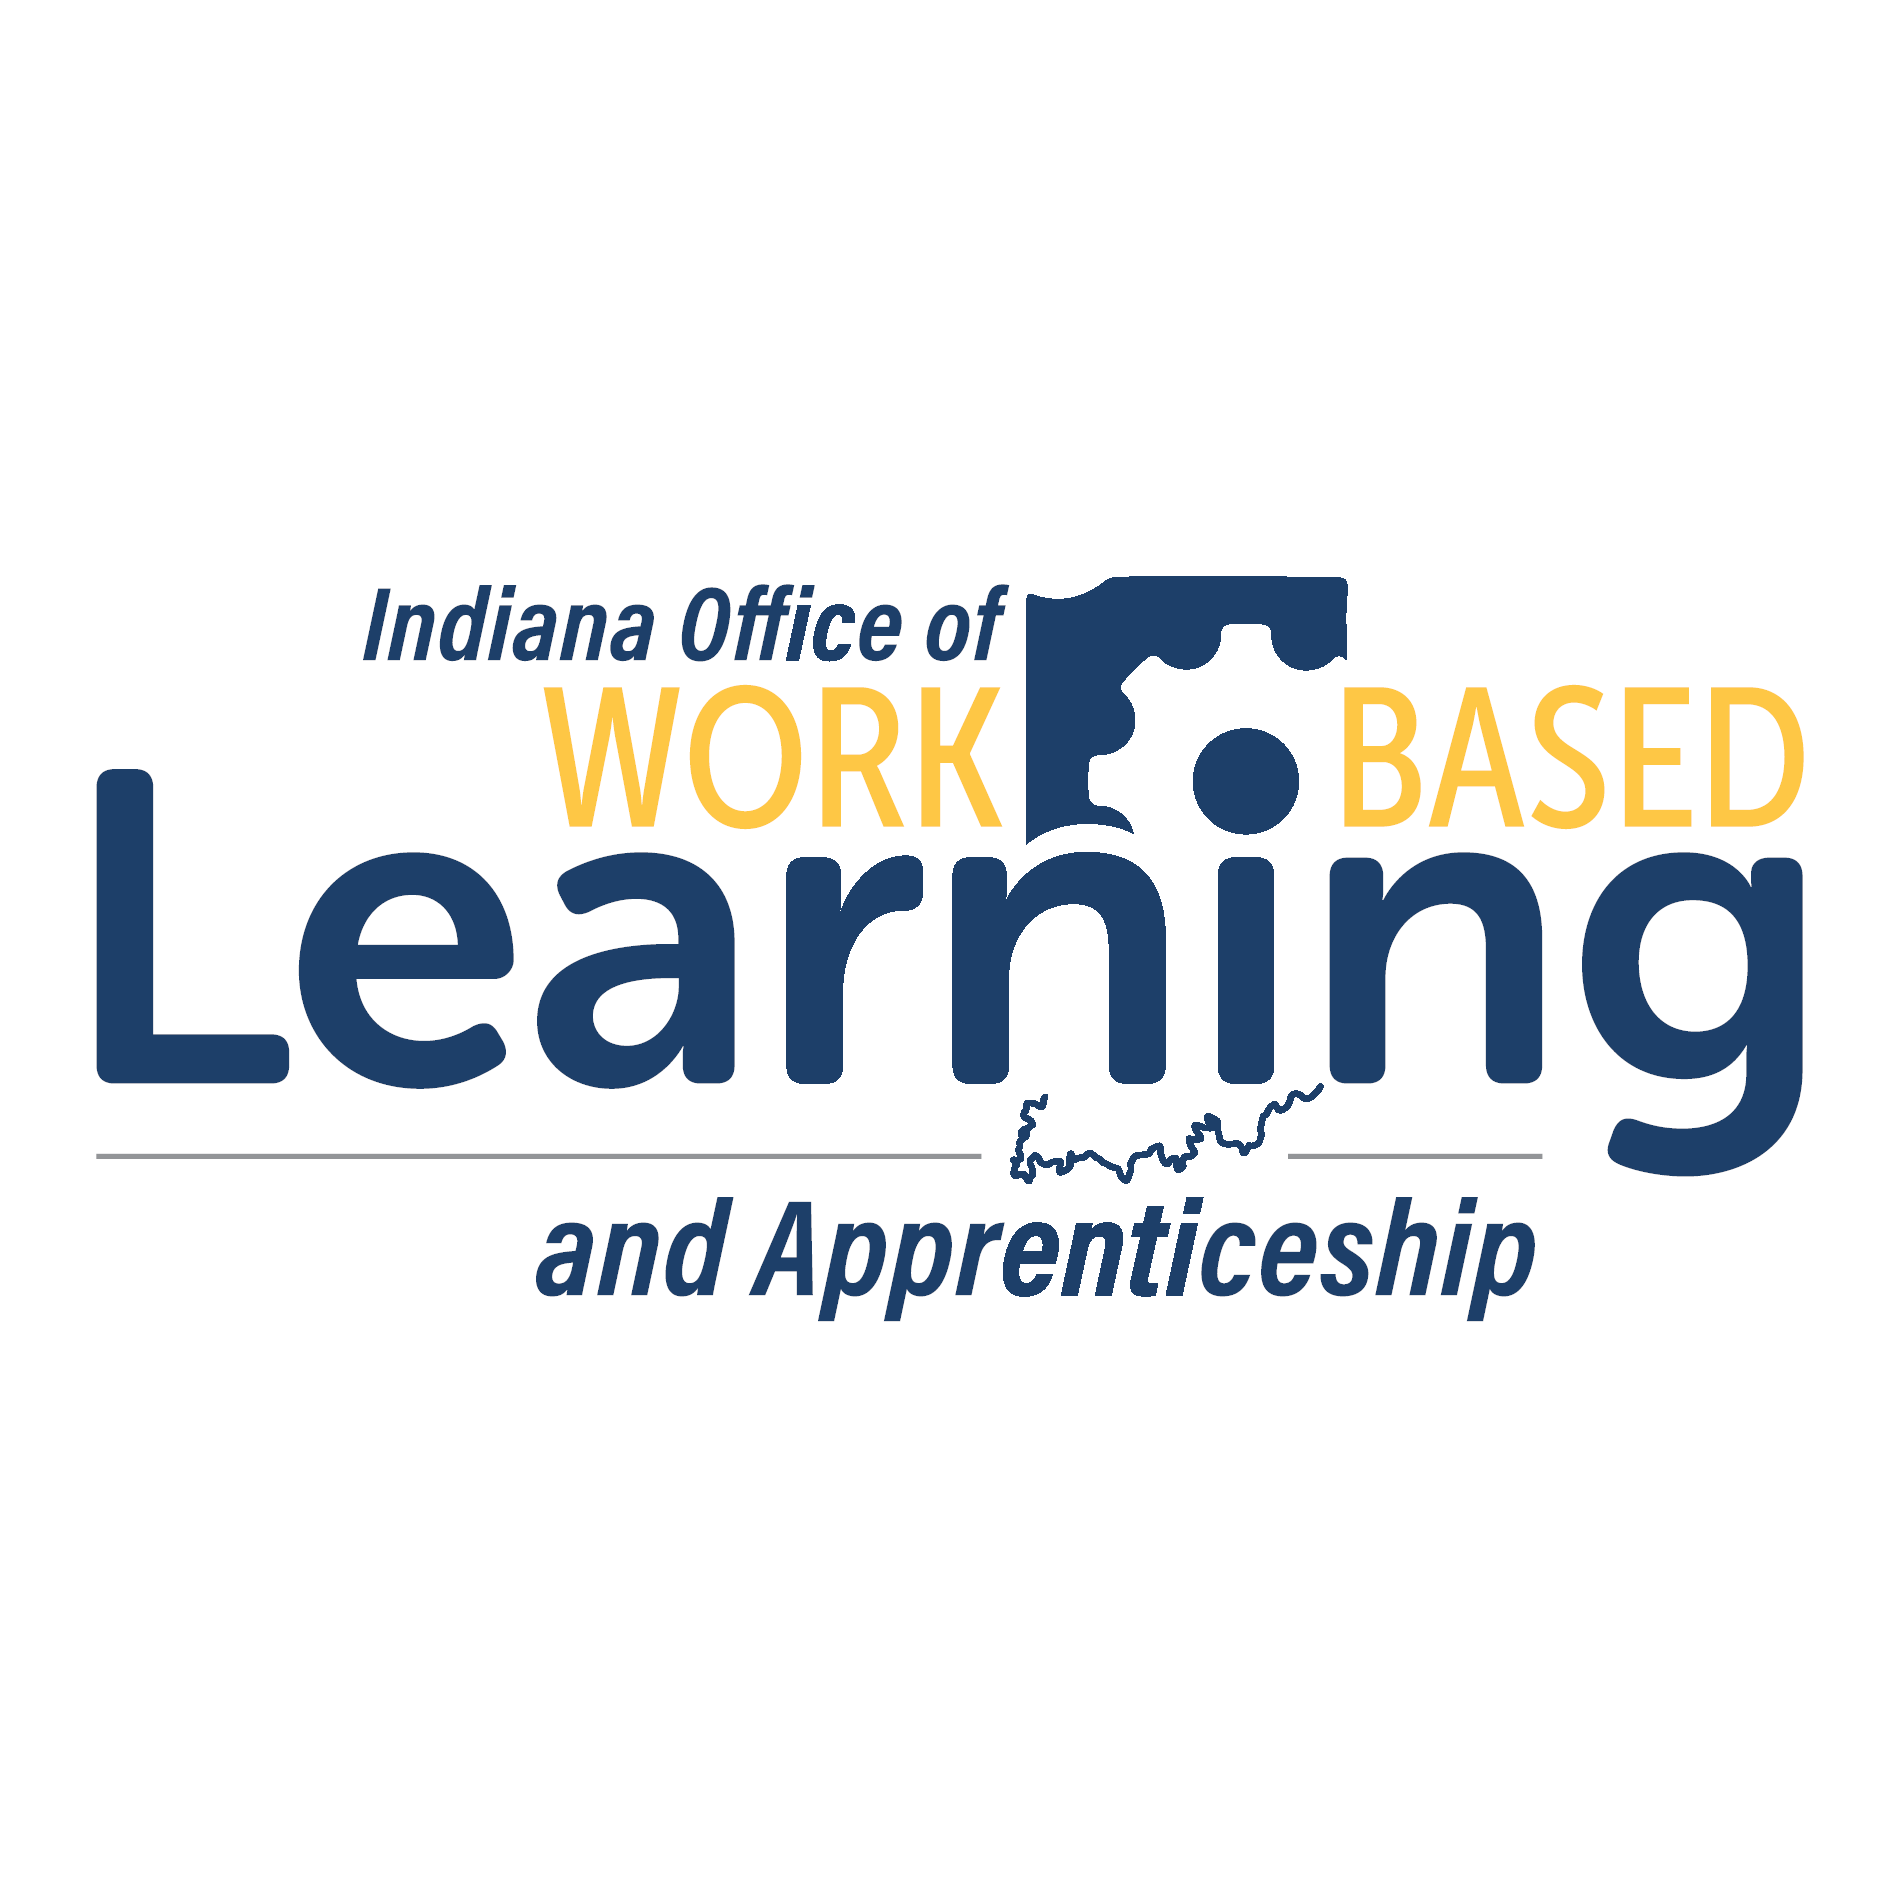 Indiana Office of Work-Based Learning and Apprenticeship Logo